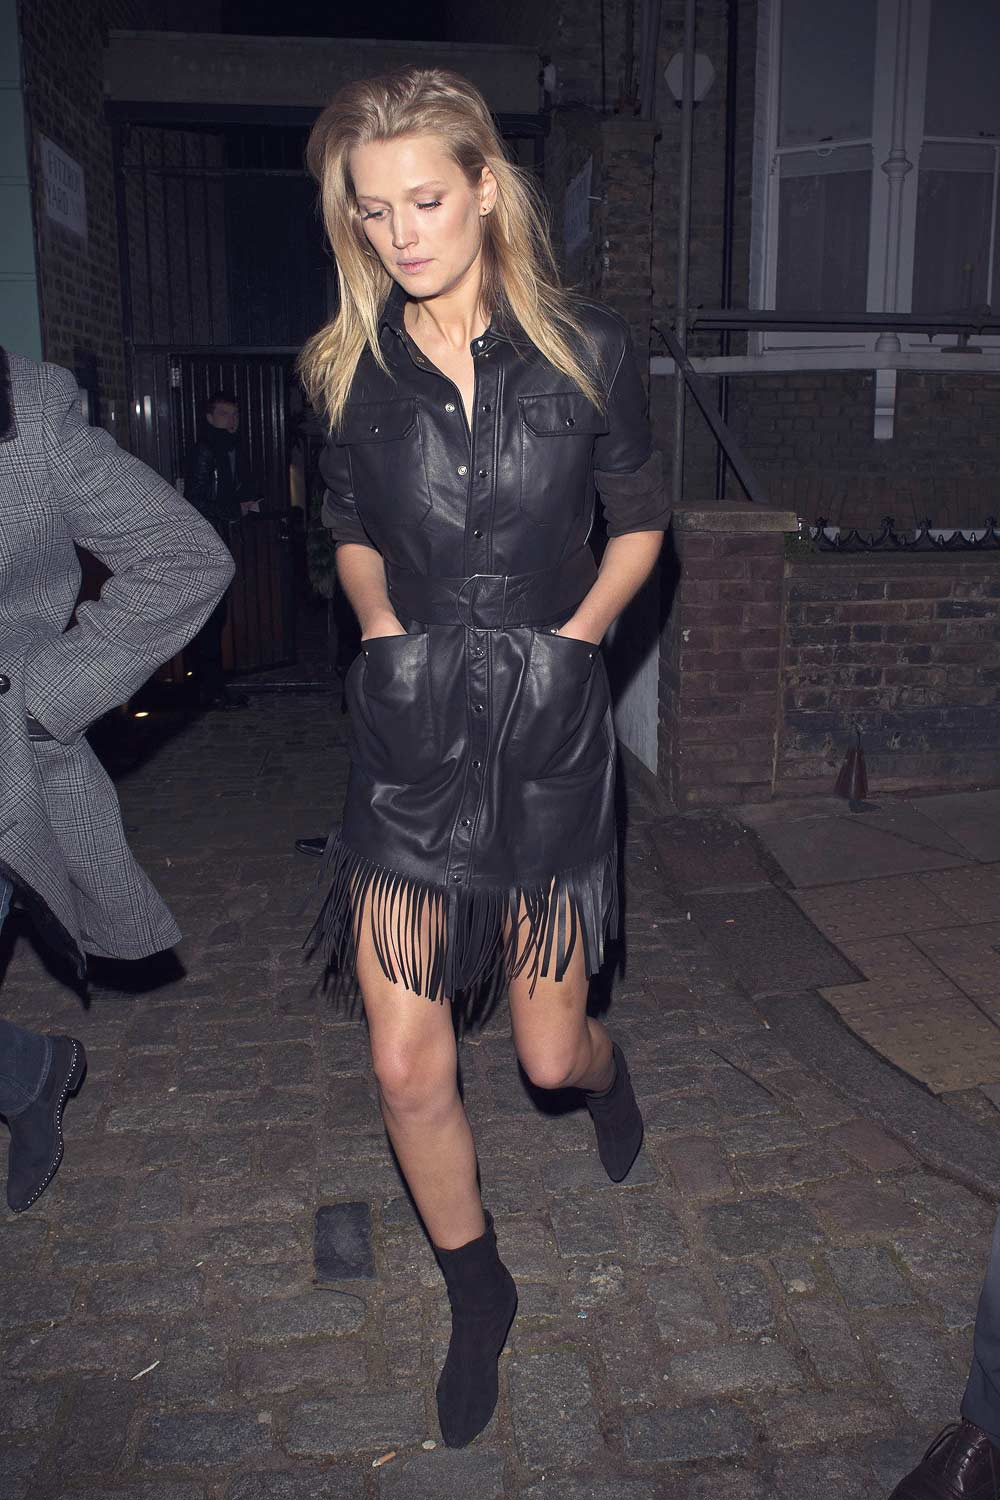 Toni Garrn attends London Fashion Week afterparty